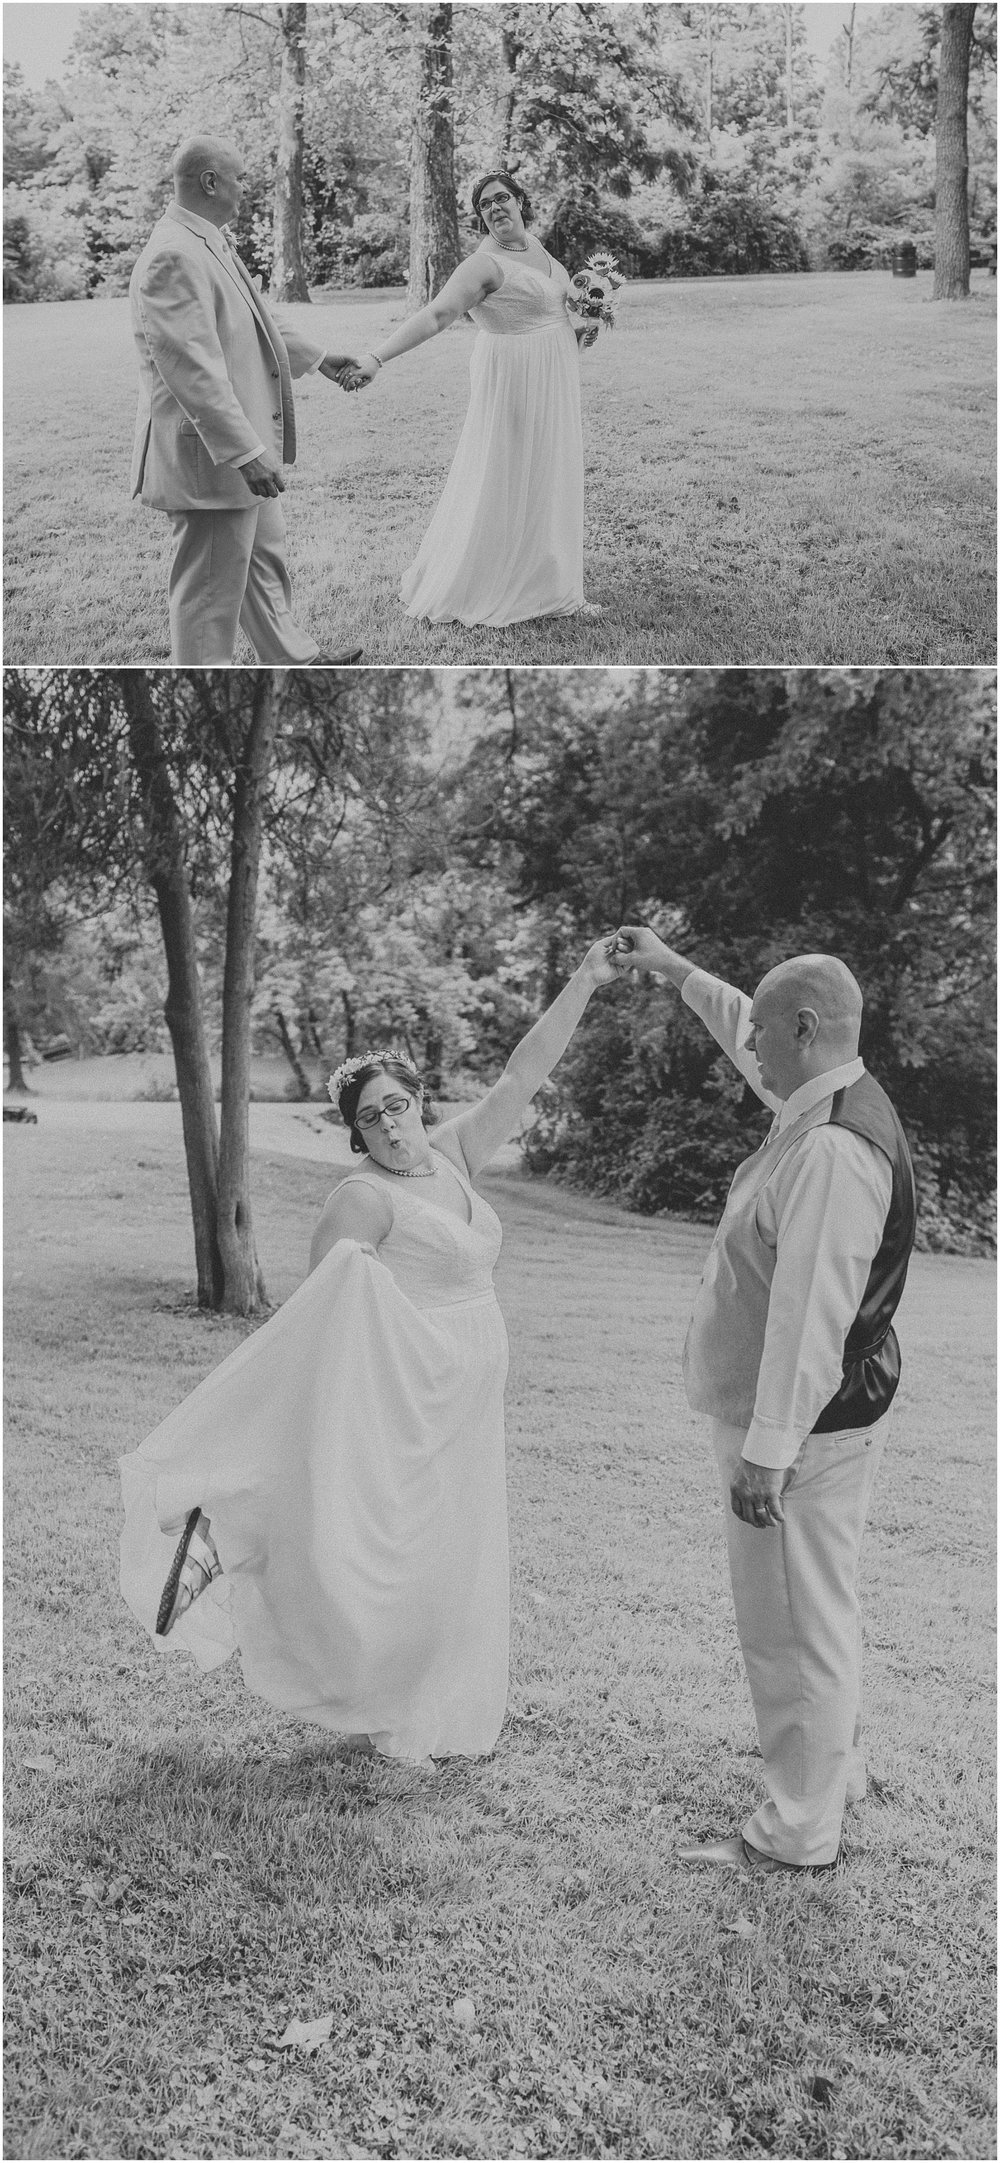 Reading-Pennsylvania-Outdoor-Wedding-DIY-Bride-Groom-Dancing-Laughter-Reception (41).jpg